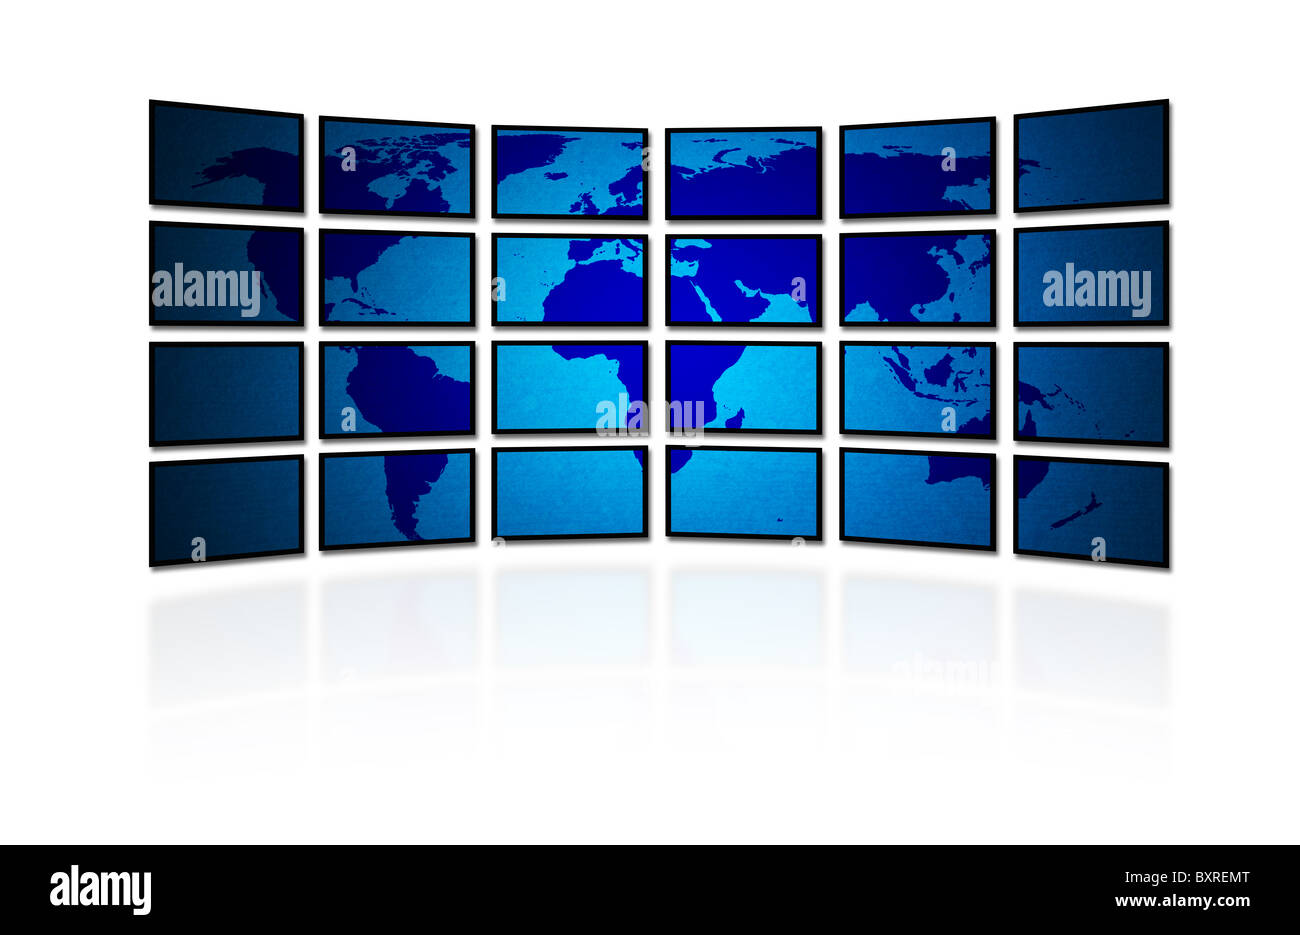 World map on digital tv wall with shadows and reflection stock world map on digital tv wall with shadows and reflection gumiabroncs Image collections